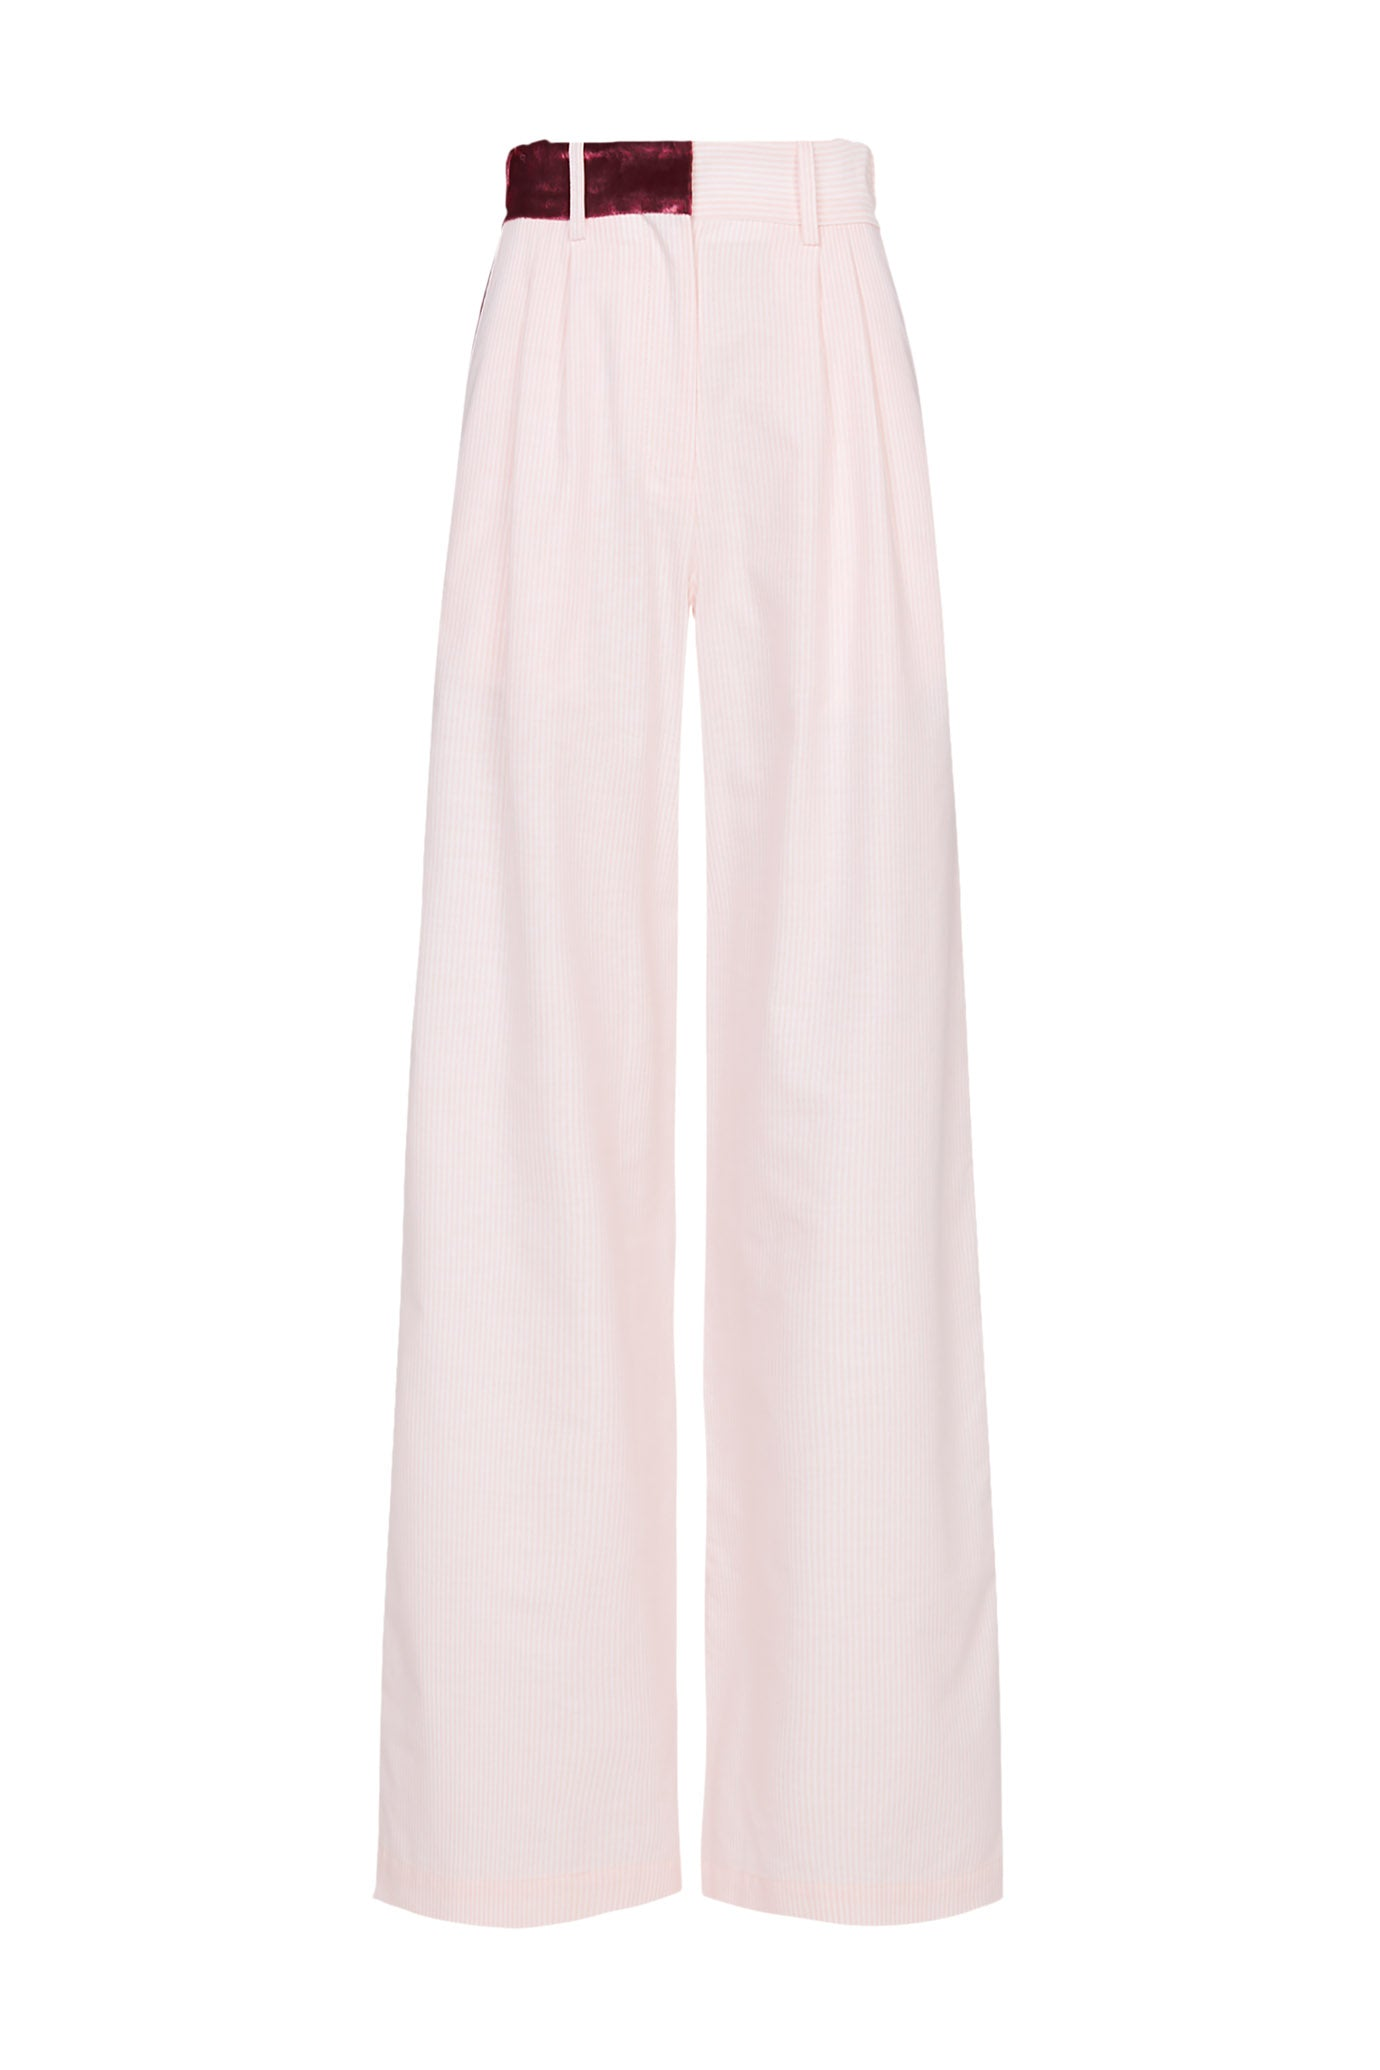 The Serena Trouser - Pale Pink Stripe Cotton - SERENA BUTE